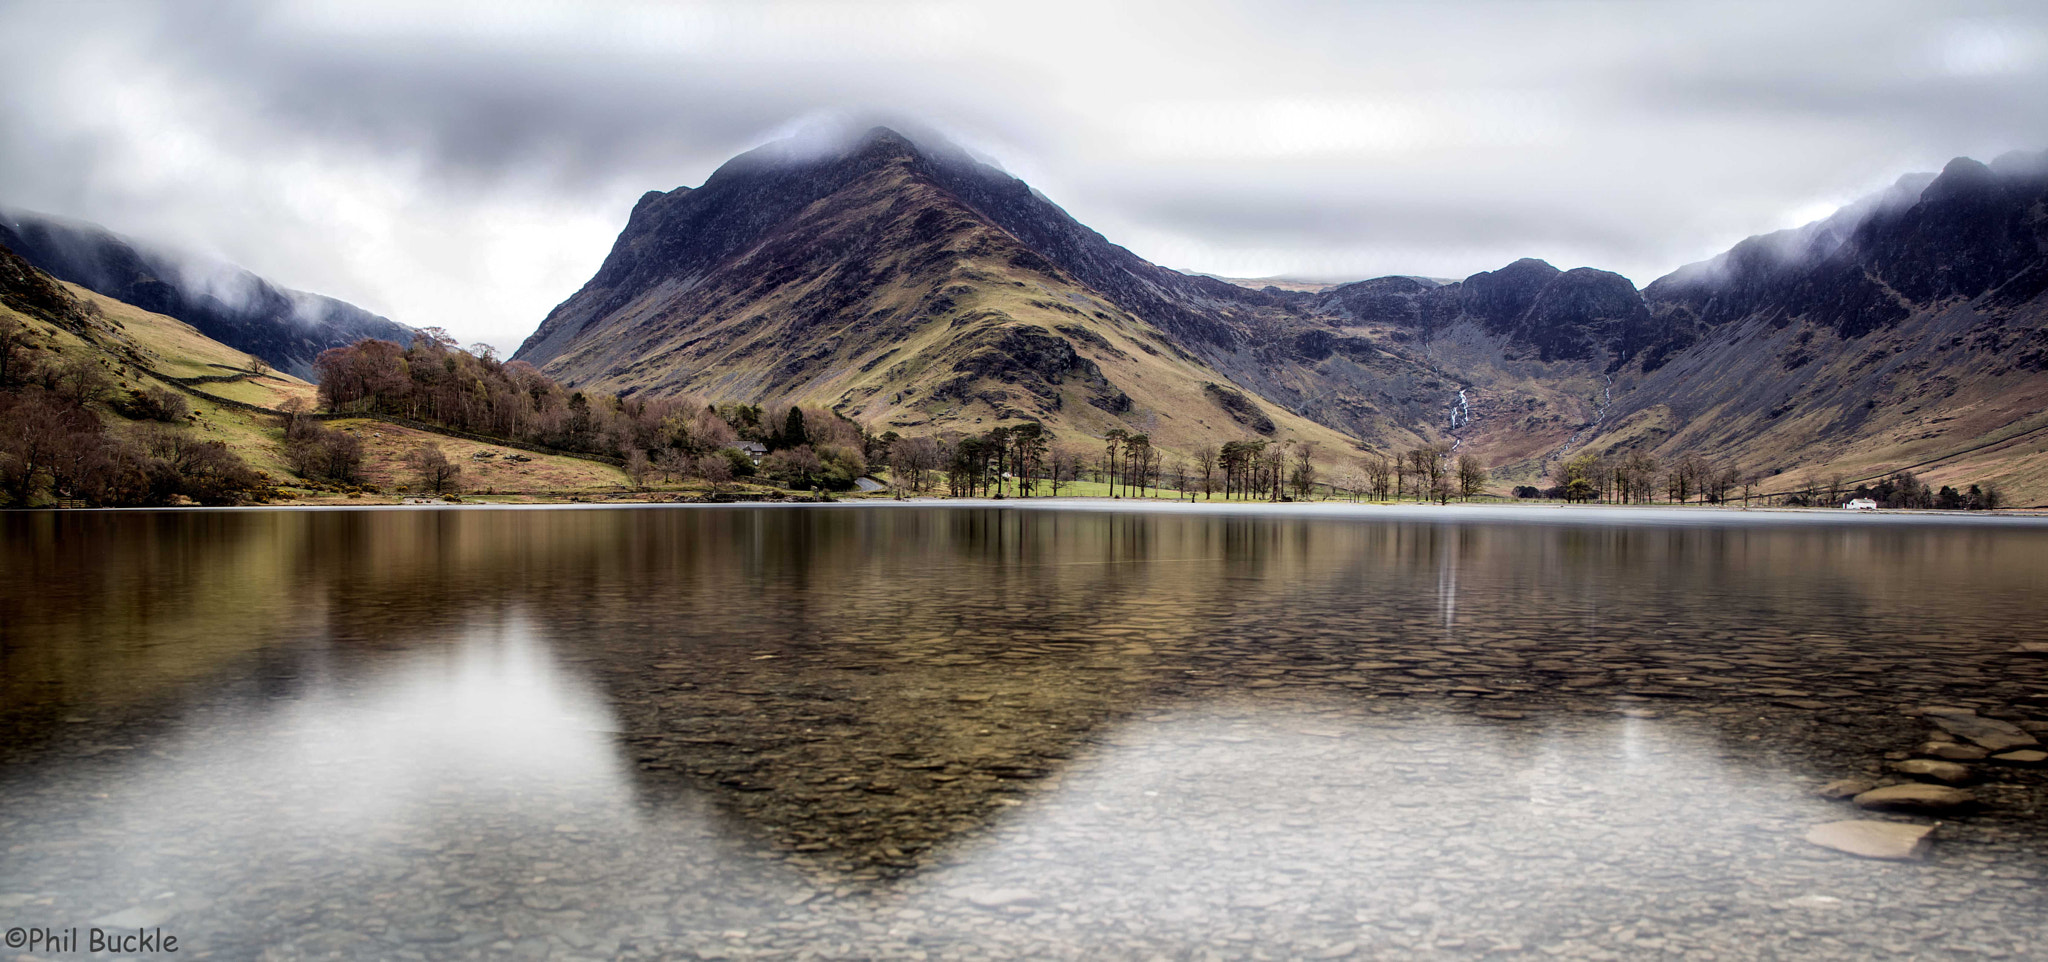 Photograph Fleetwith Pike by Phil Buckle on 500px